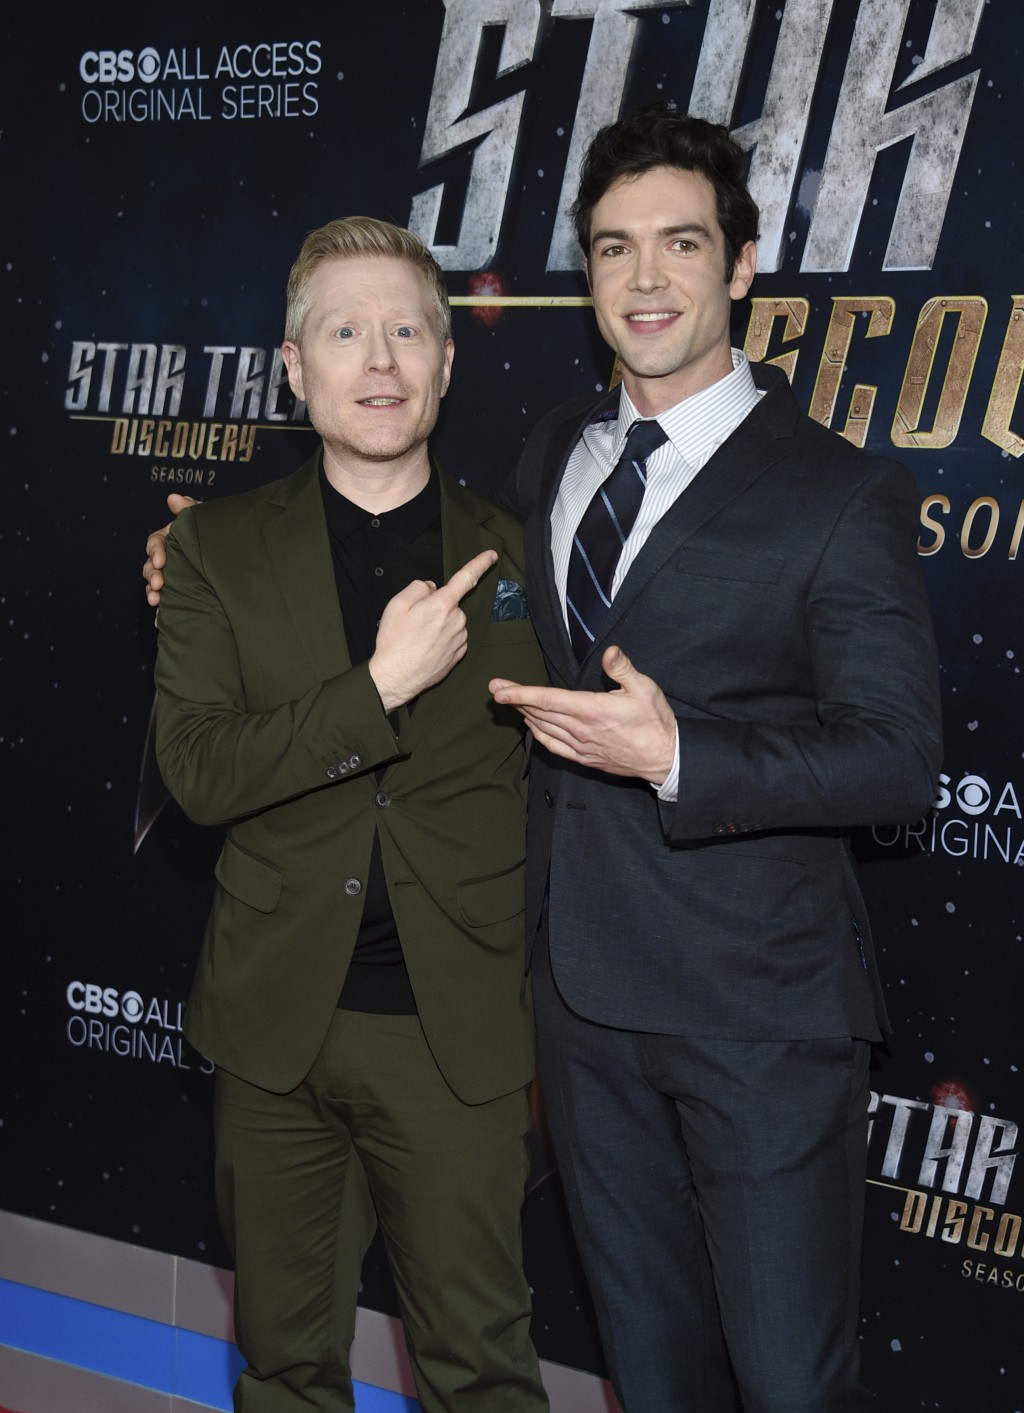 """Actors Anthony Rapp, left, and Ethan Peck pose together at the """"Star Trek: Discovery"""" season two premiere at the Conrad New York on Thursday, Jan. 17,..."""